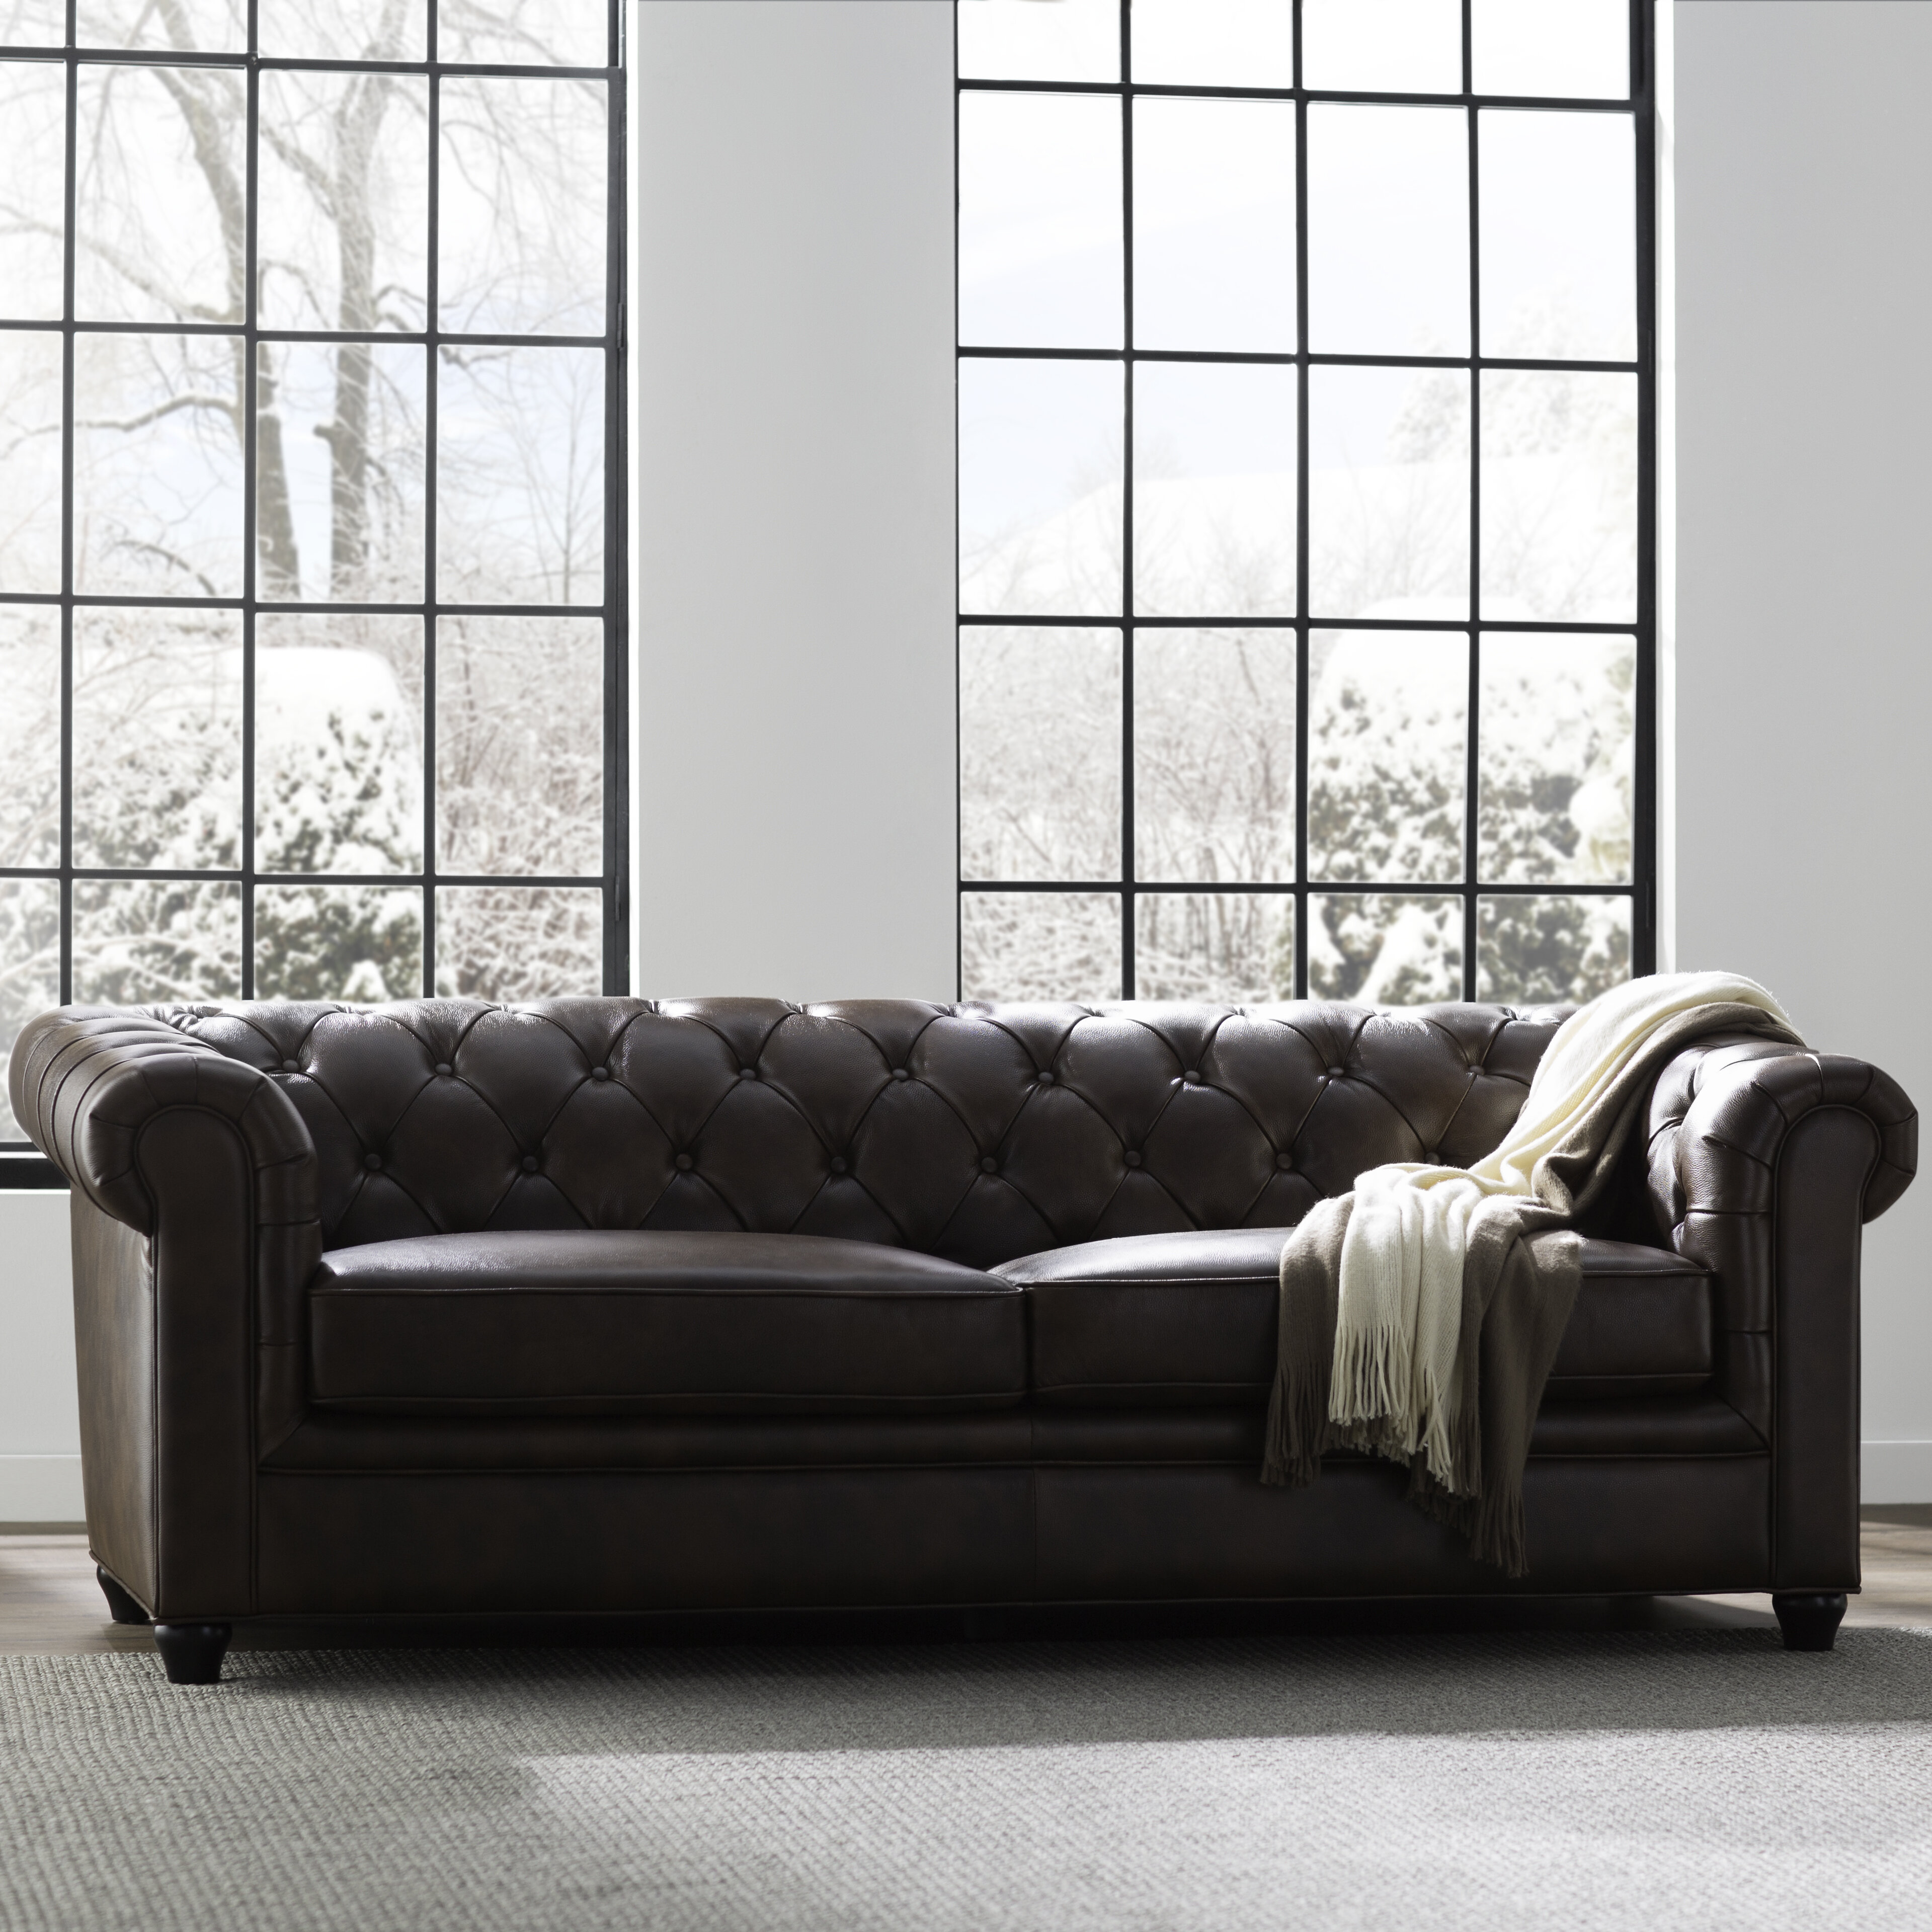 Leather Sofas And Couches You Ll Love